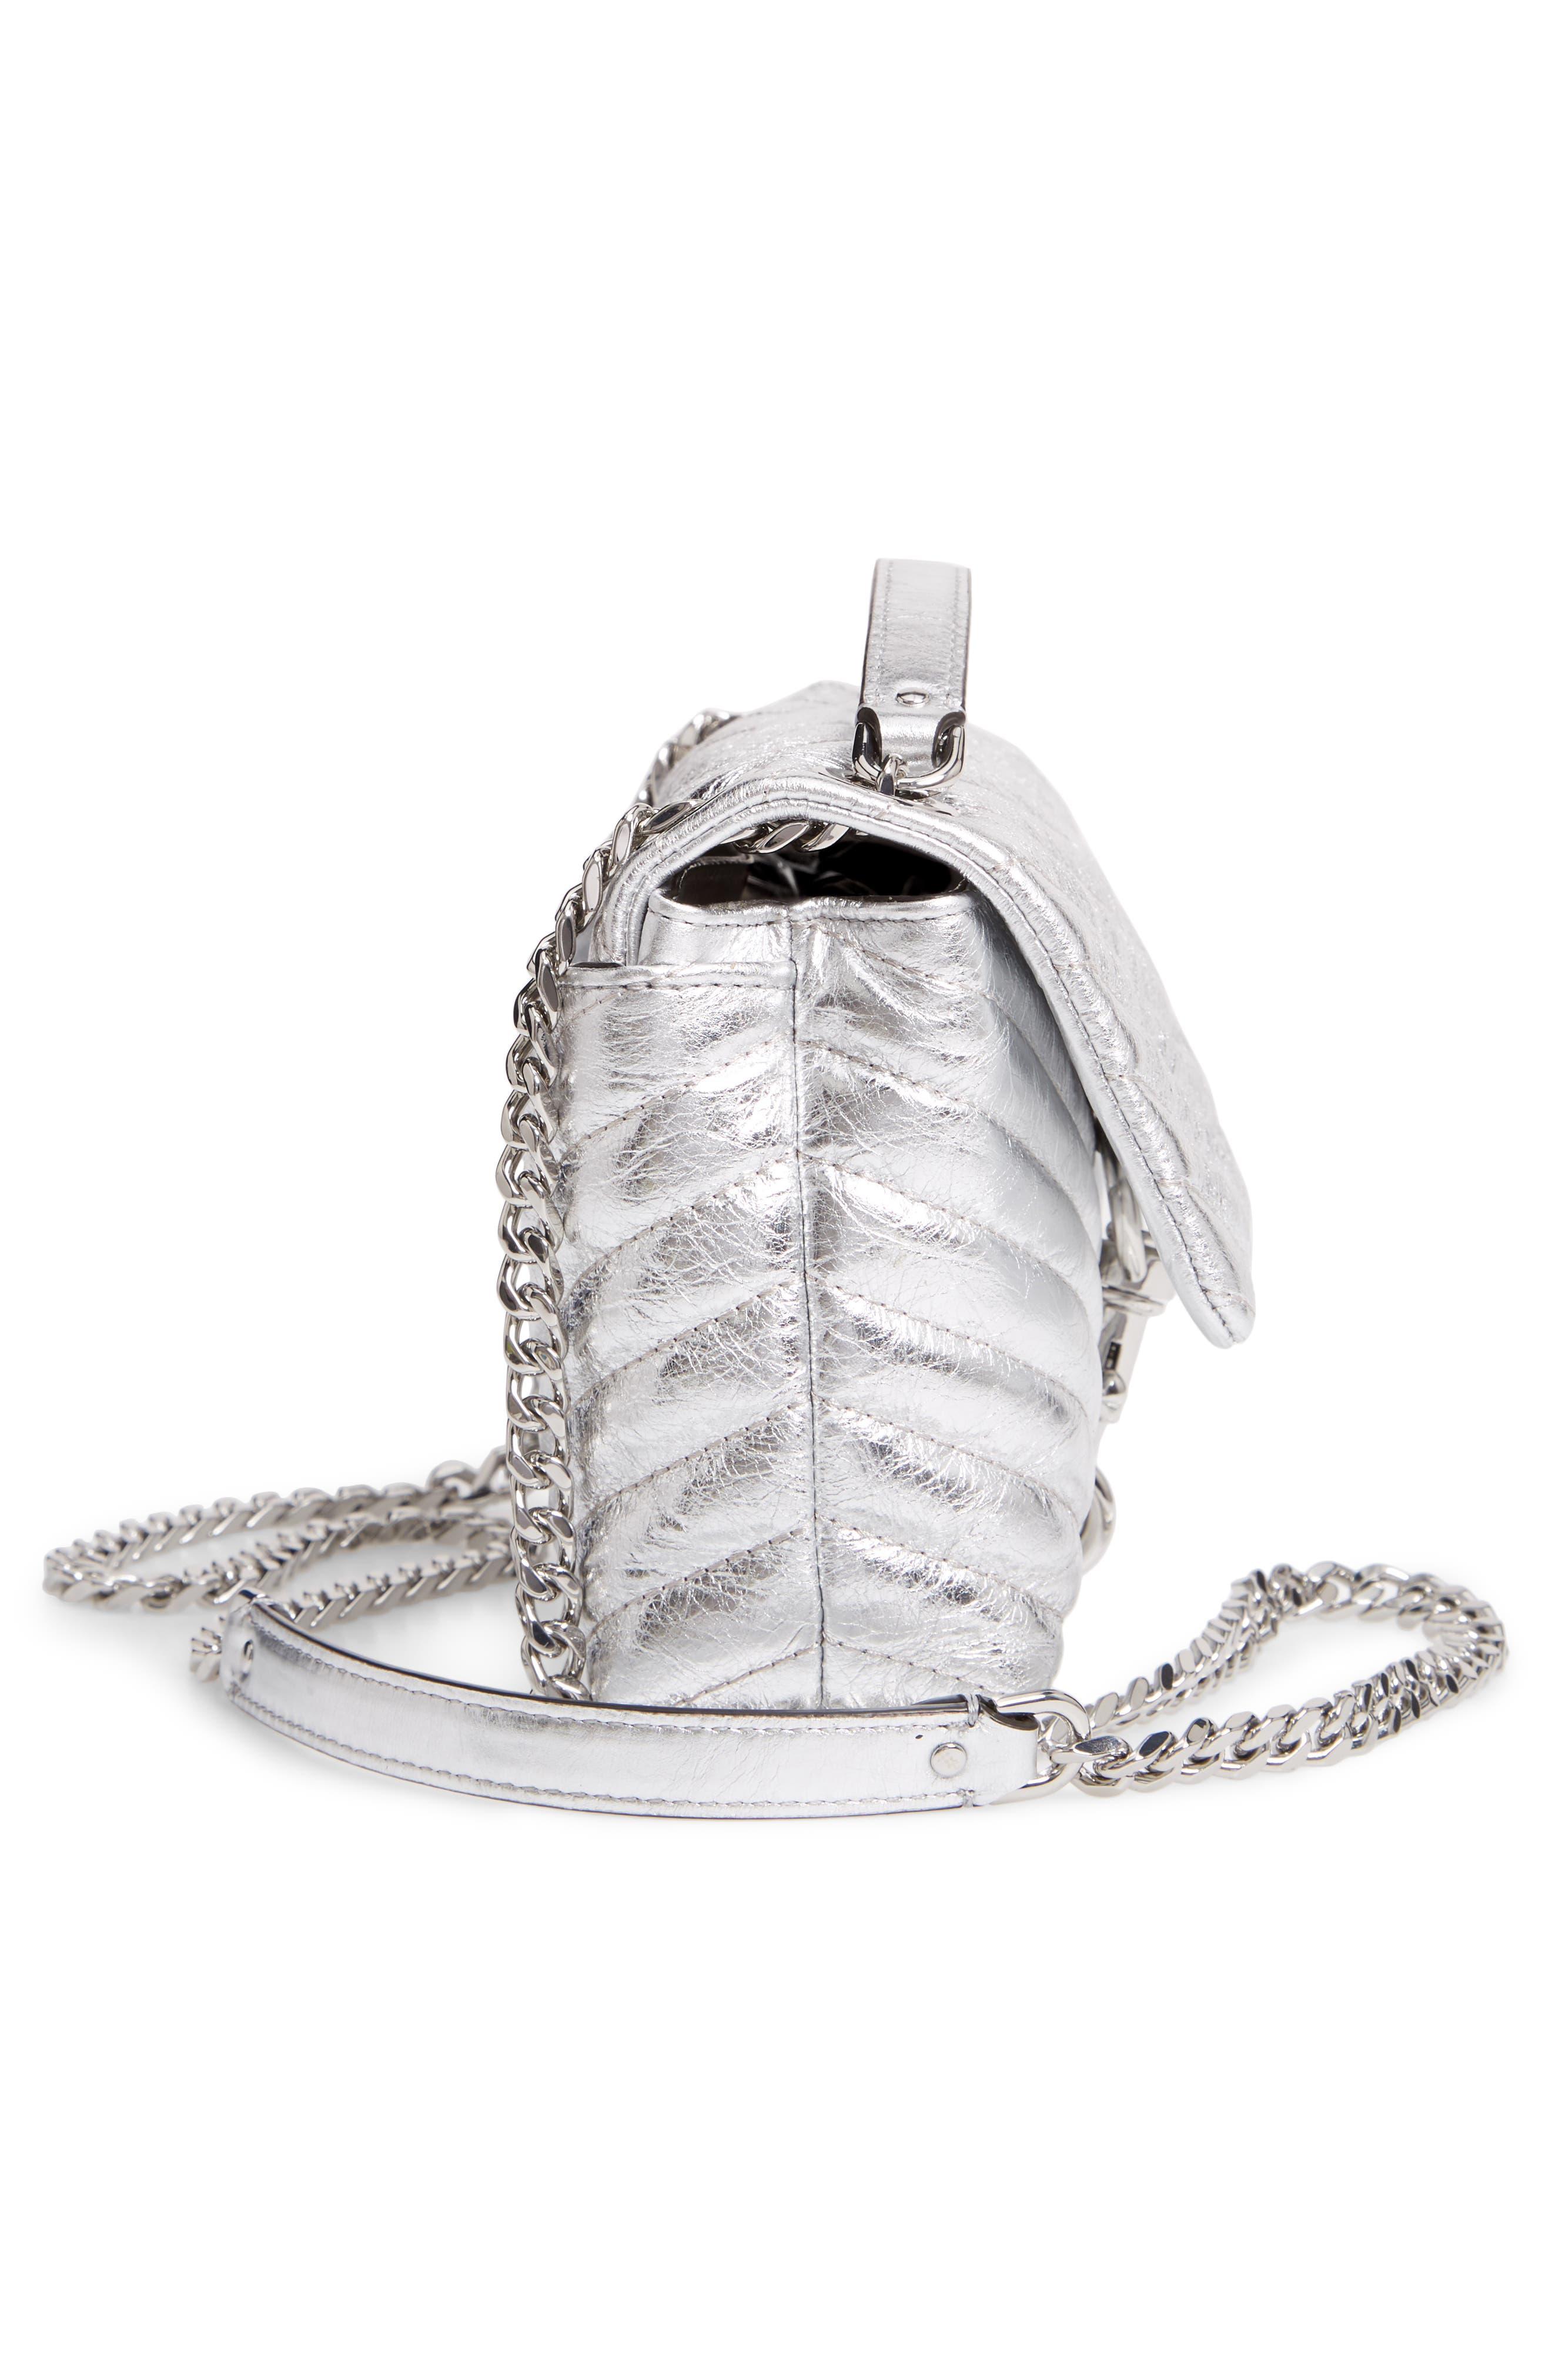 REBECCA MINKOFF, Edie Metallic Leather Shoulder Bag, Alternate thumbnail 5, color, SILVER